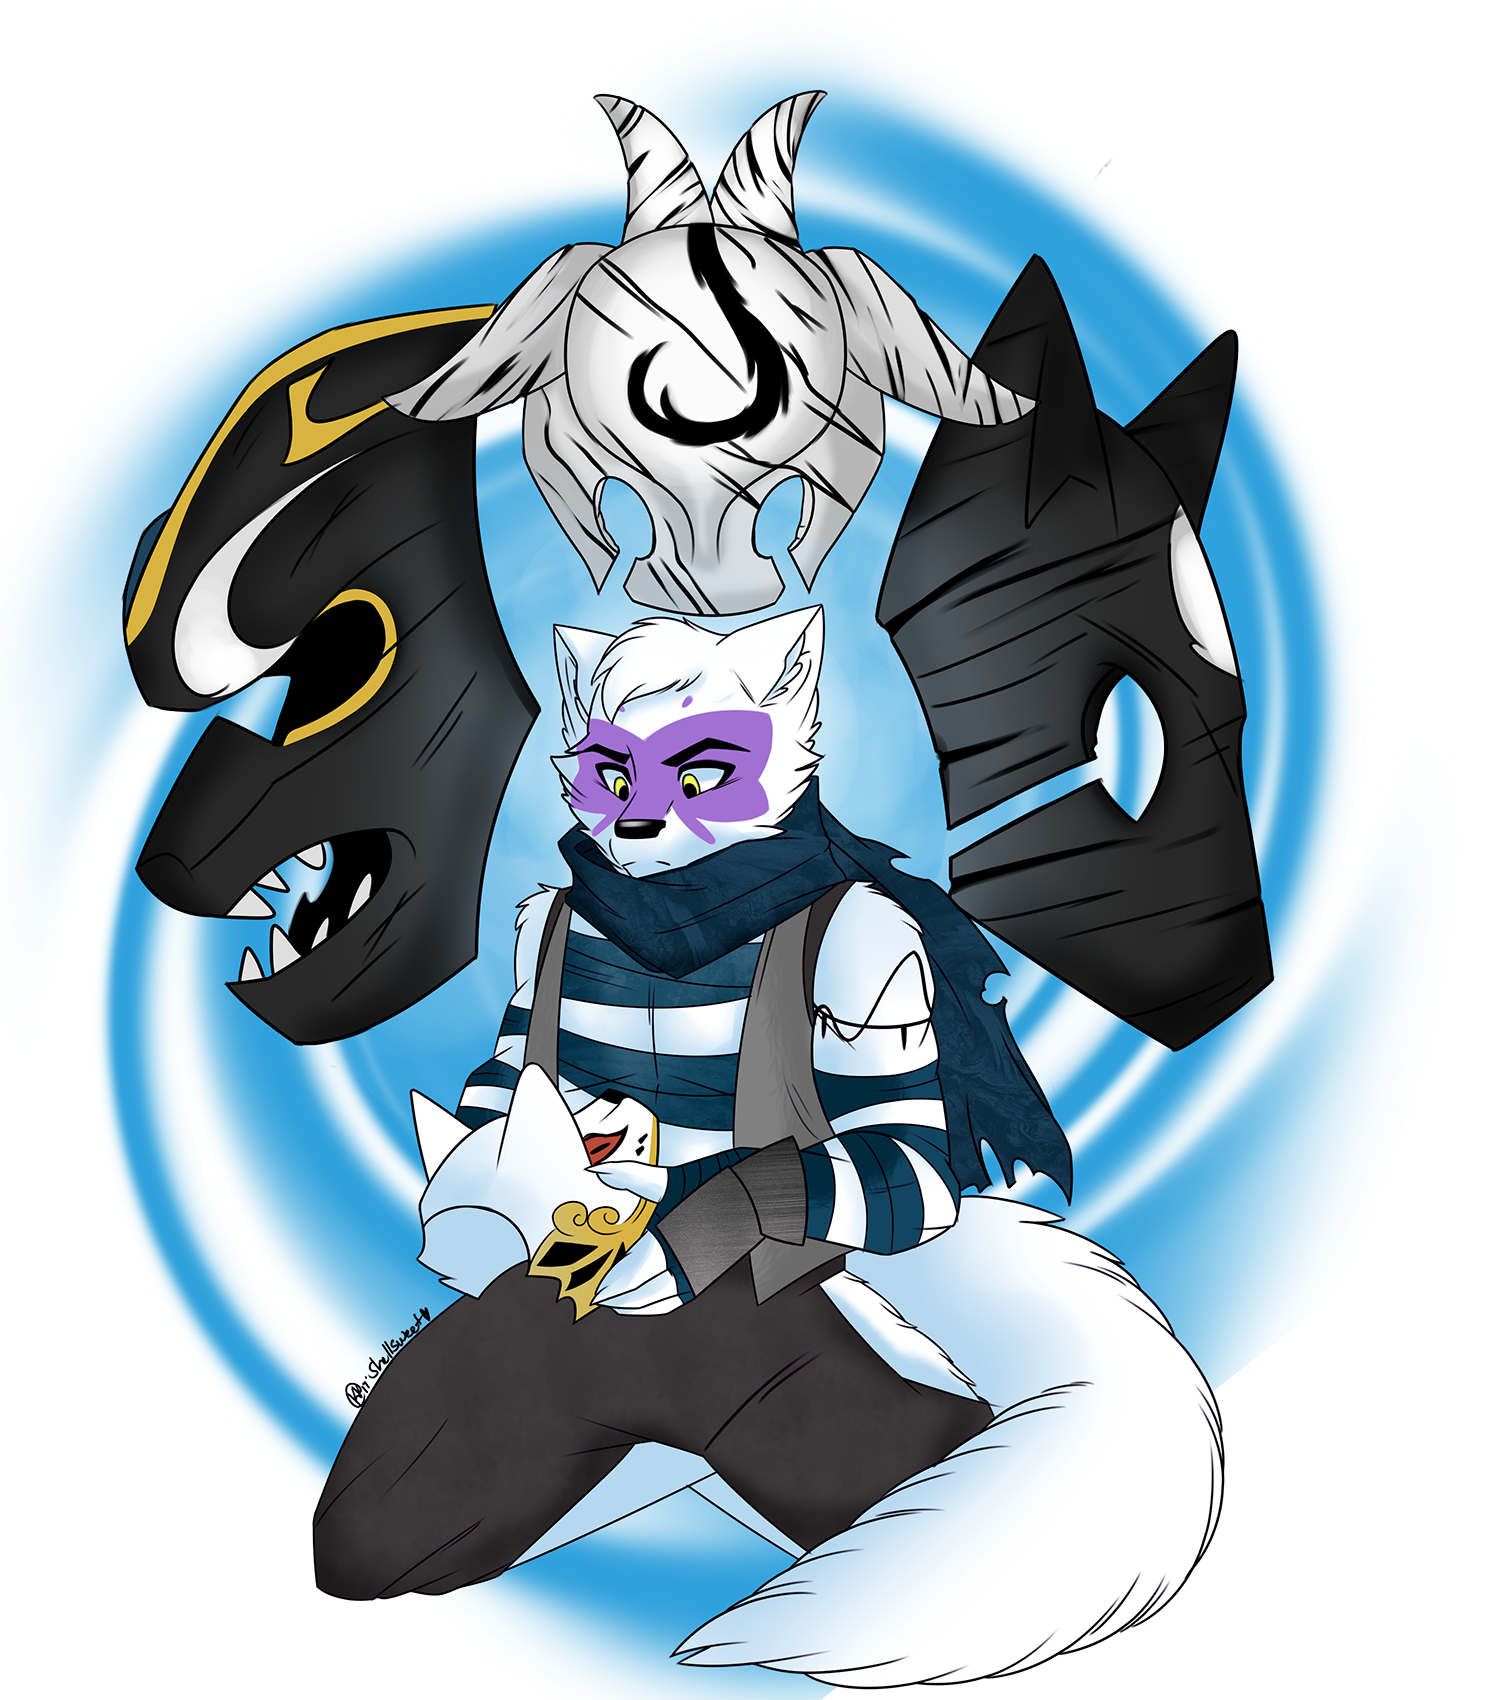 e621 alopex anthro arctic_fox canine clothed clothing fox fur hi_res male mammal shellsweet silver_(alopex) simple_background teenage_mutant_ninja_turtles white_fur yellow_eyes